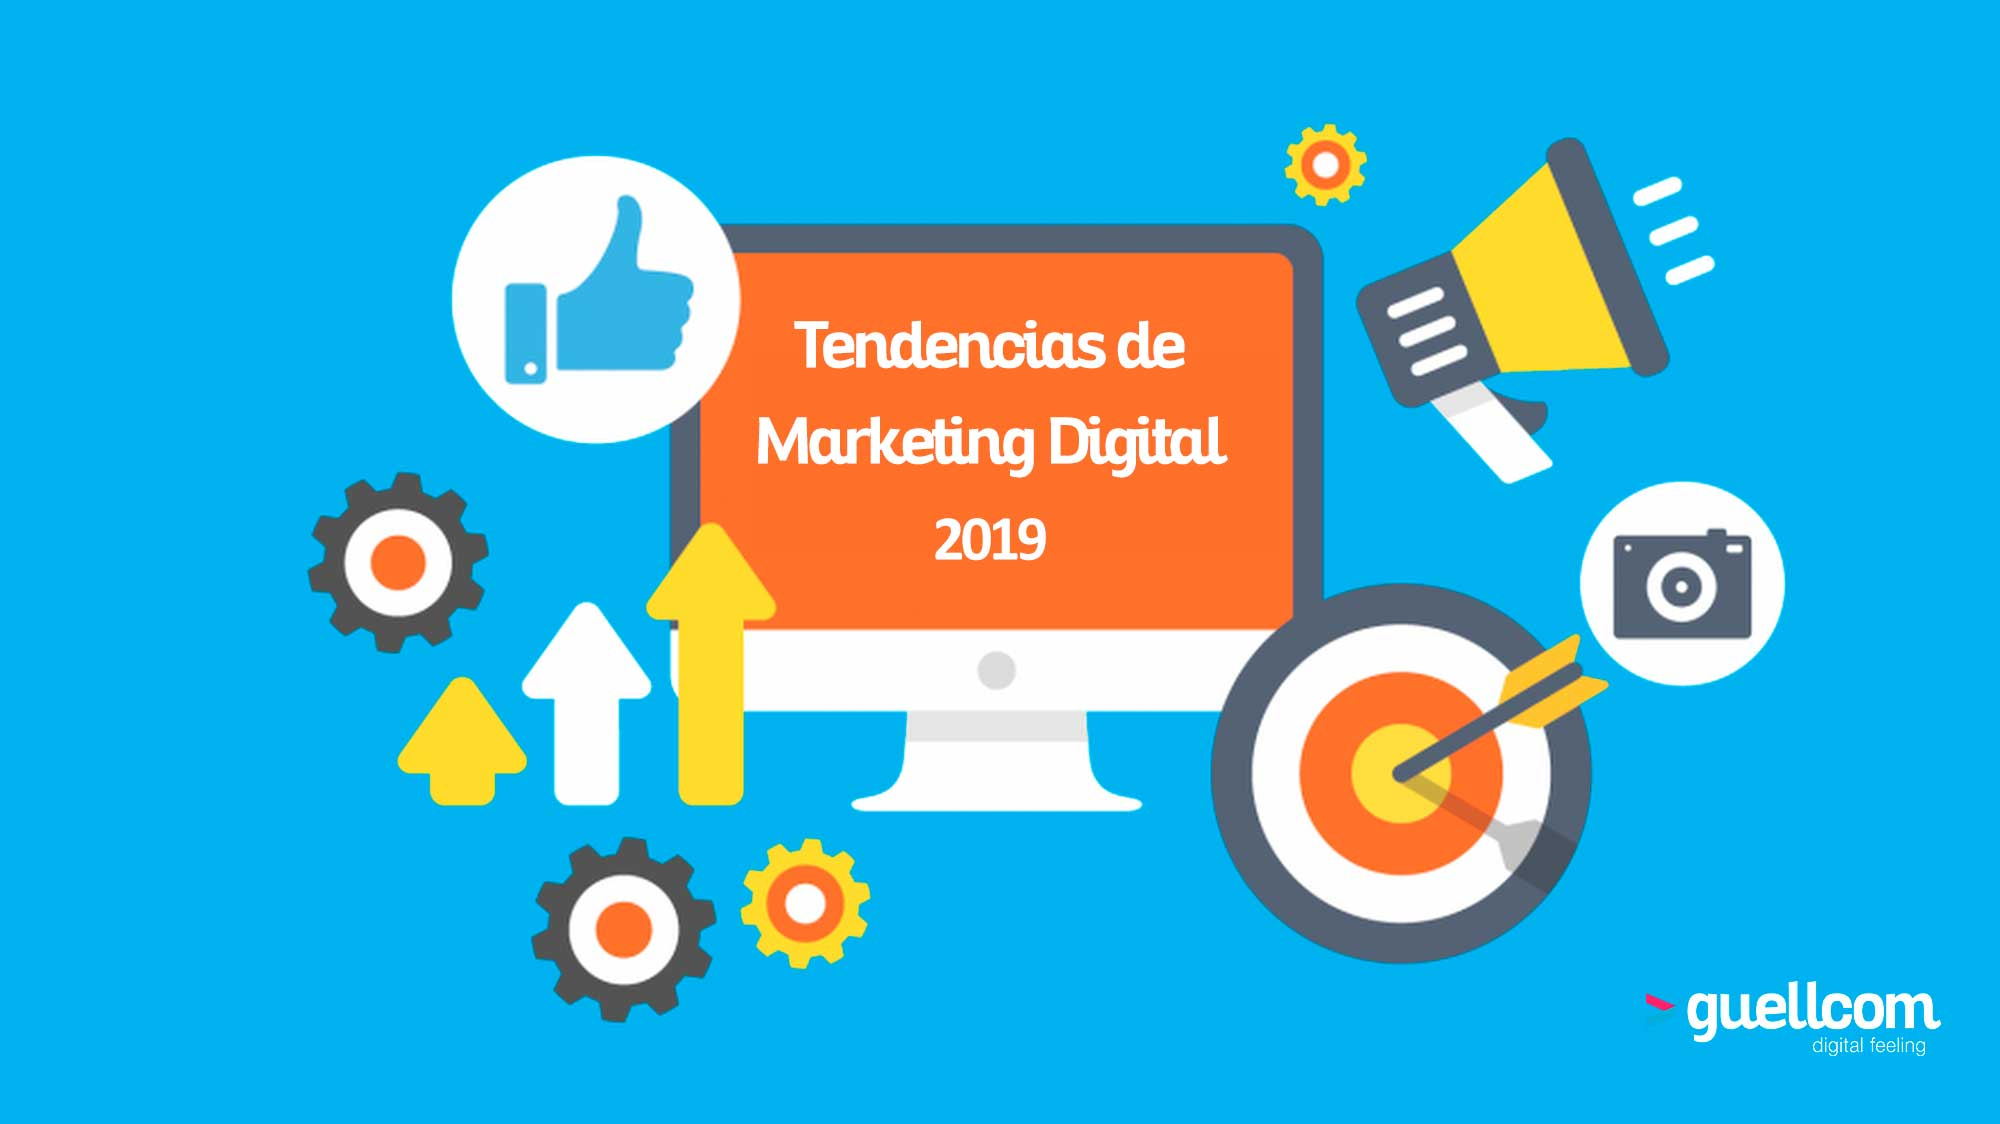 10 Tendencias de Marketing Digital 2019